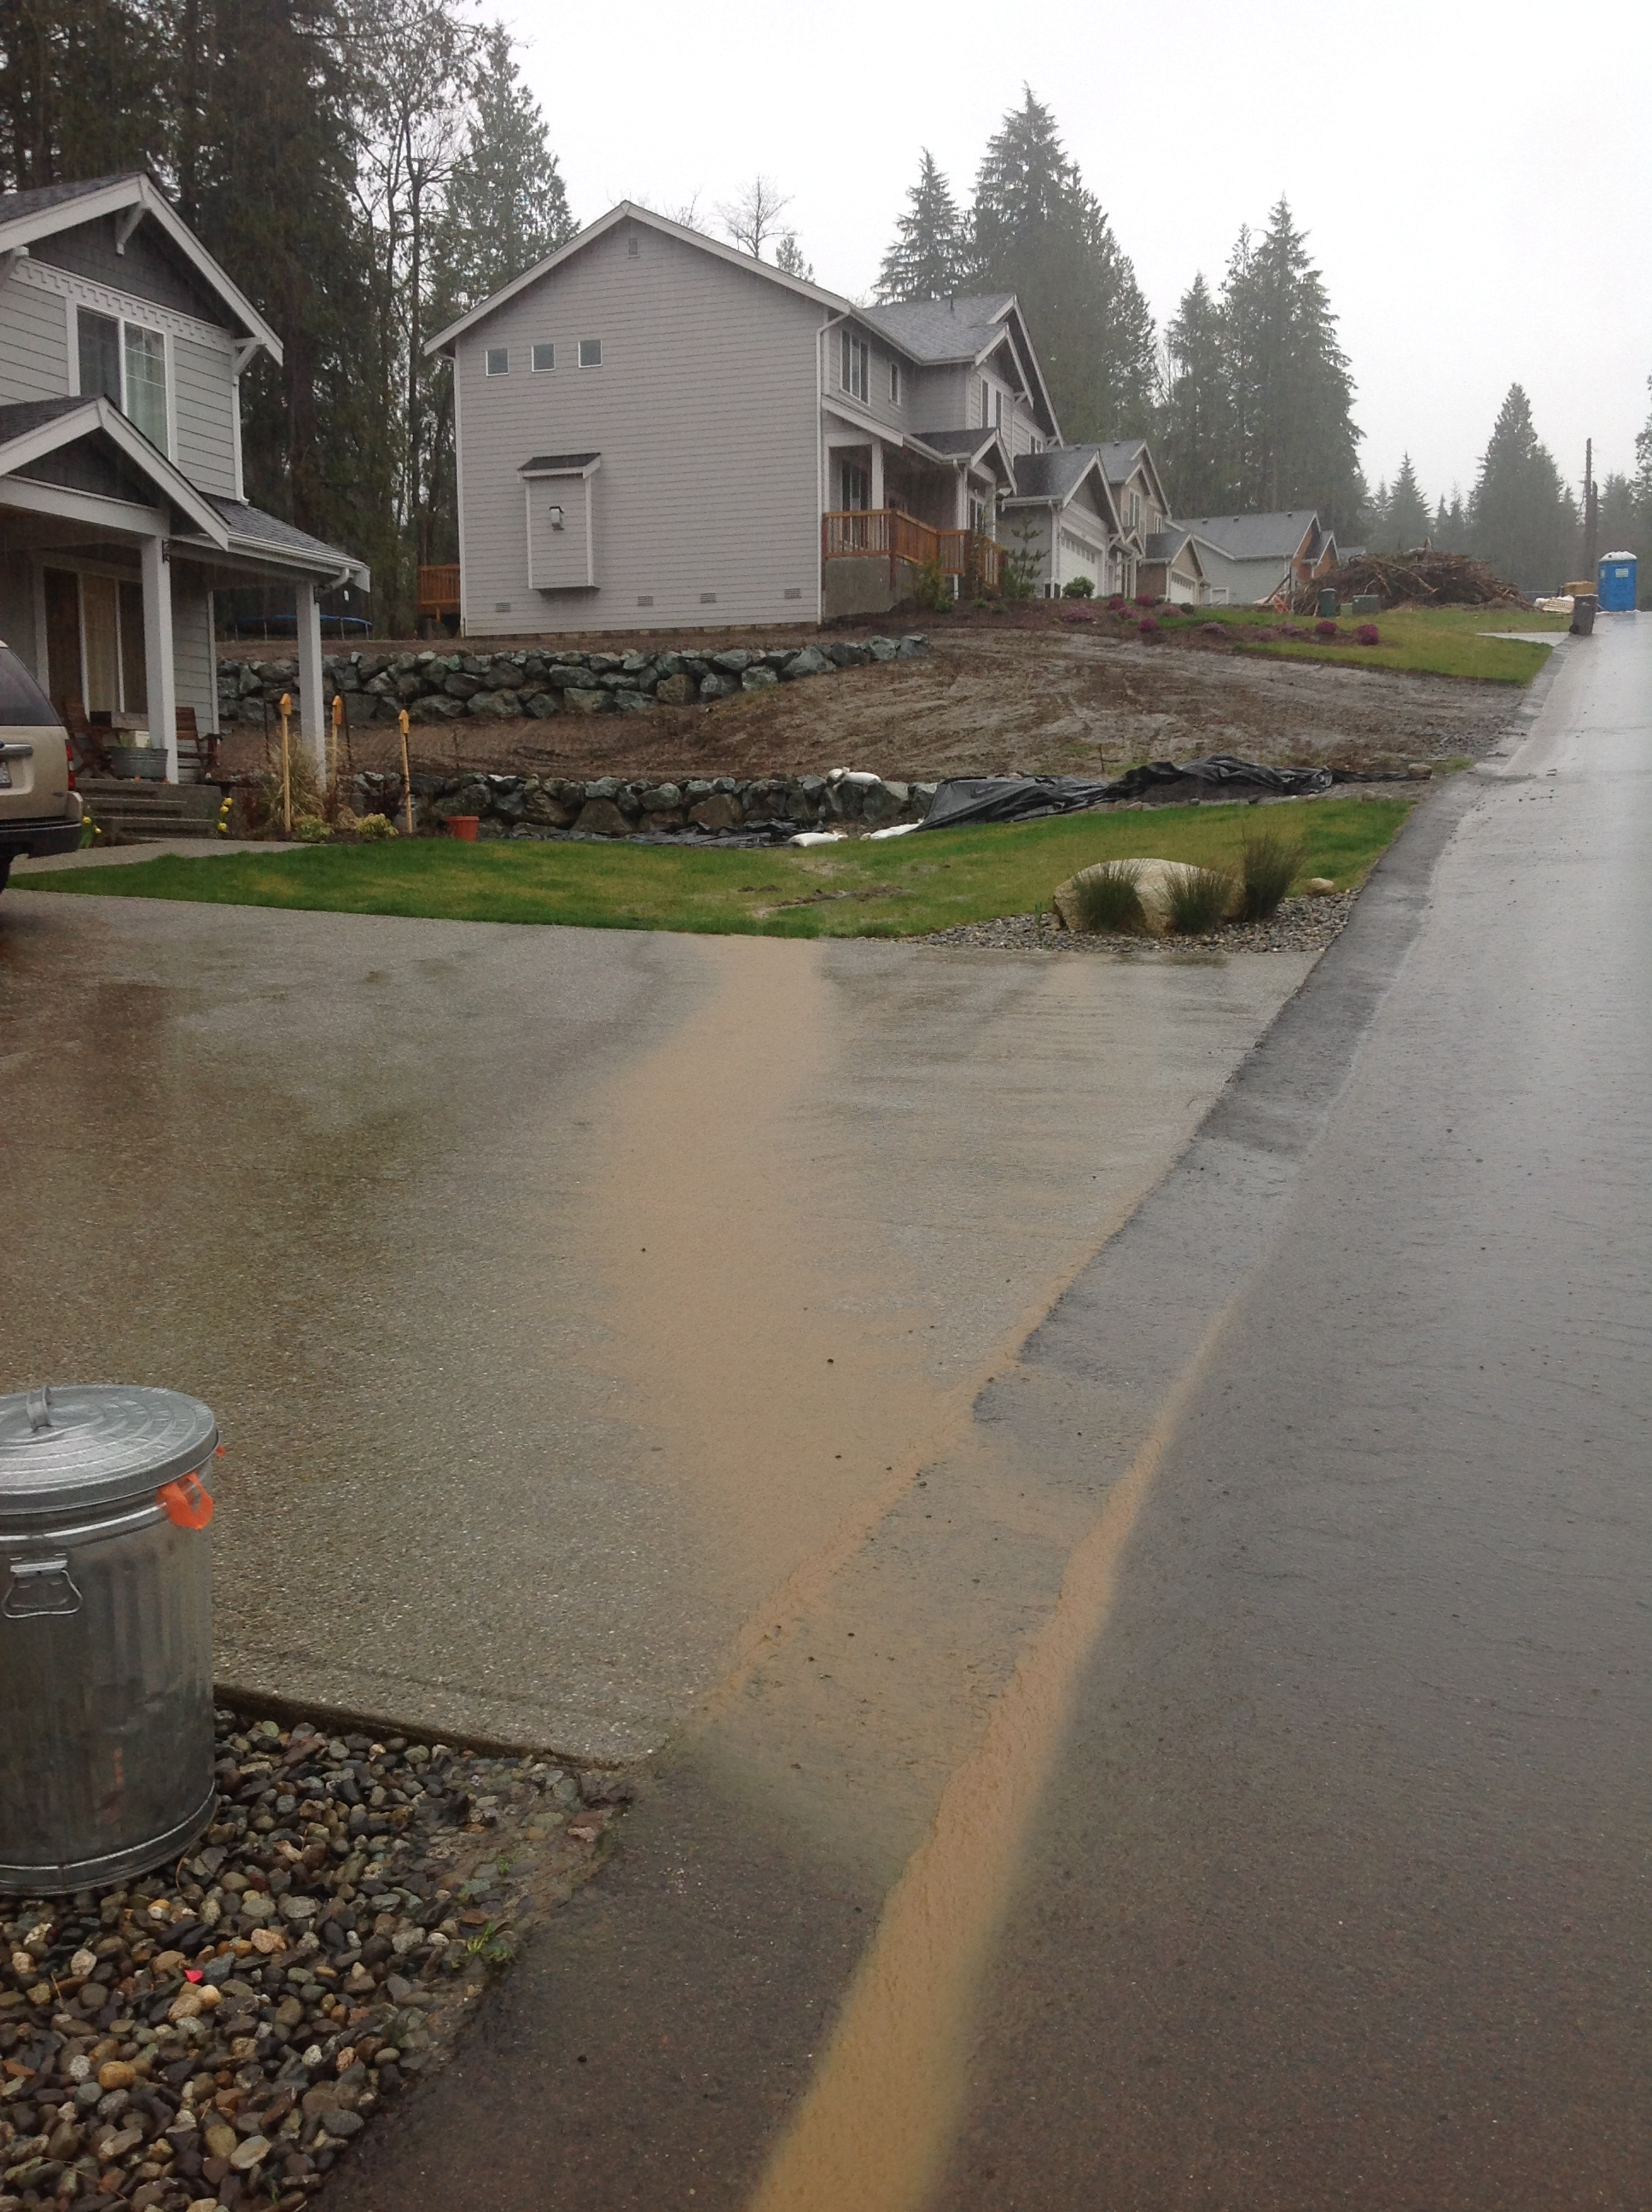 Photo of Stormwater runoff before project installation